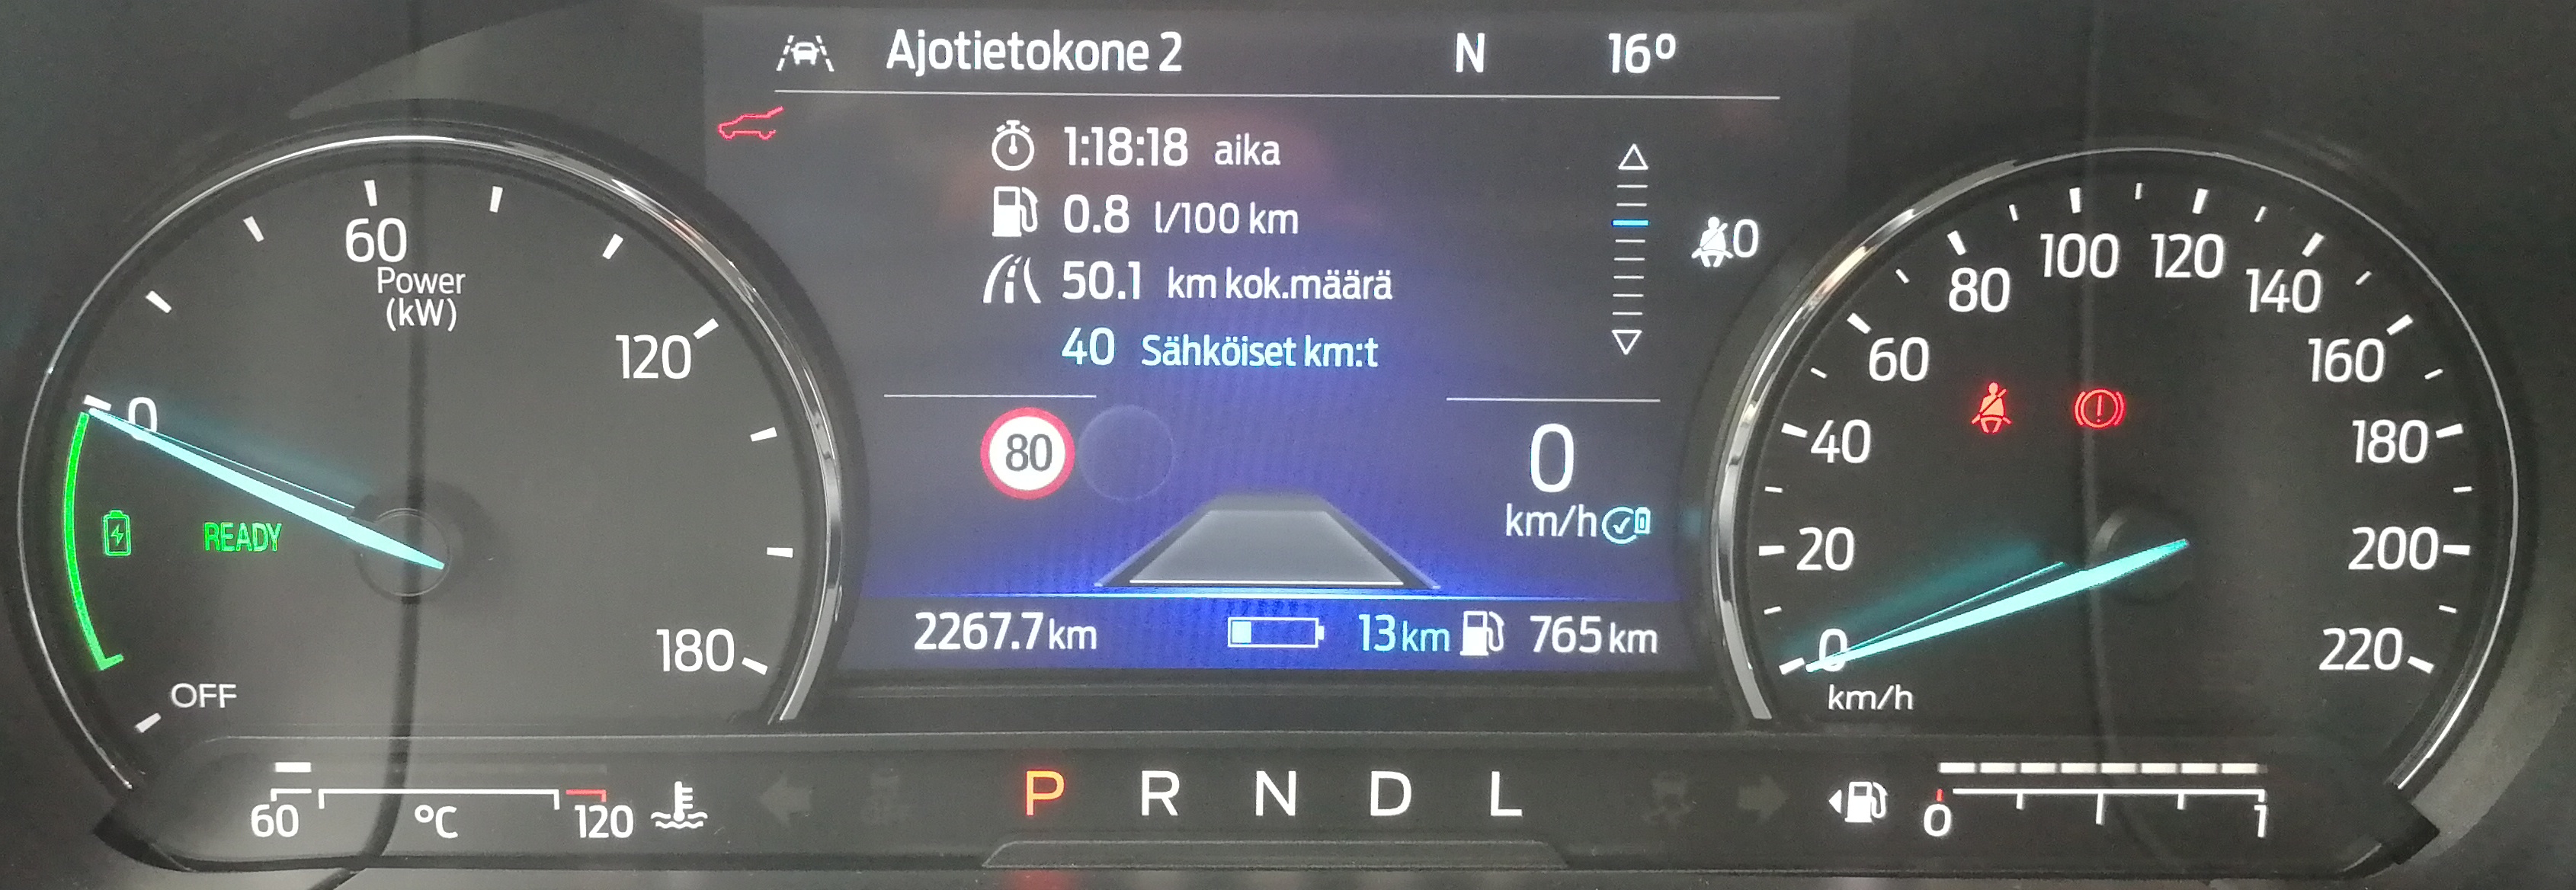 Ford Kuga PHEV consumpiton 0,8 l/100 km for 50 km trip with full battery